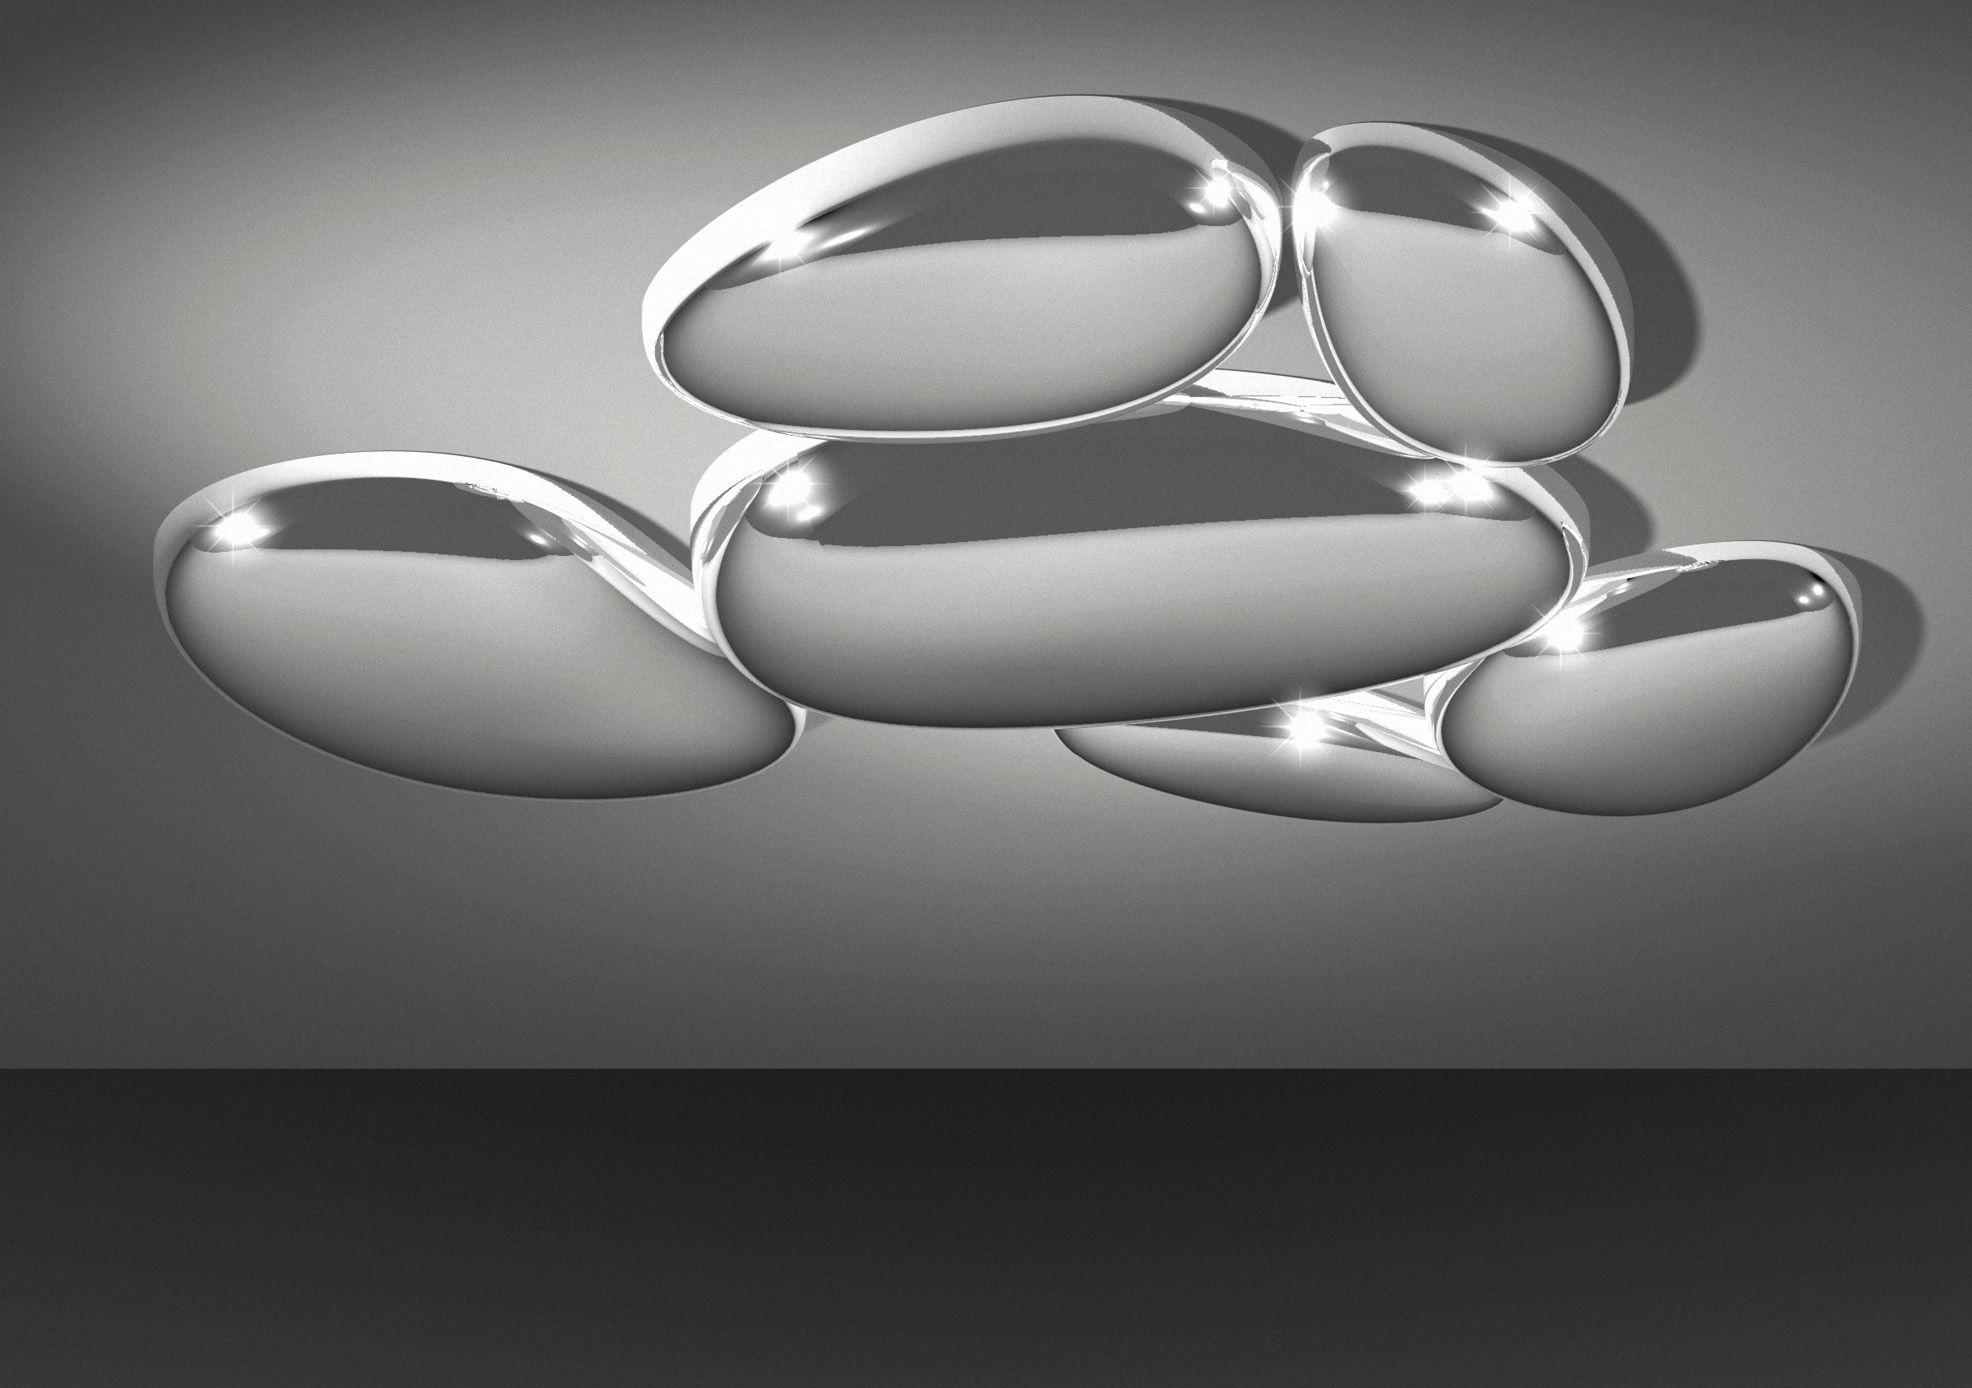 Lighting - Ceiling Lights - Skydro Ceiling light - Electrified module by Artemide - Chrome - ABS, Cast aluminium